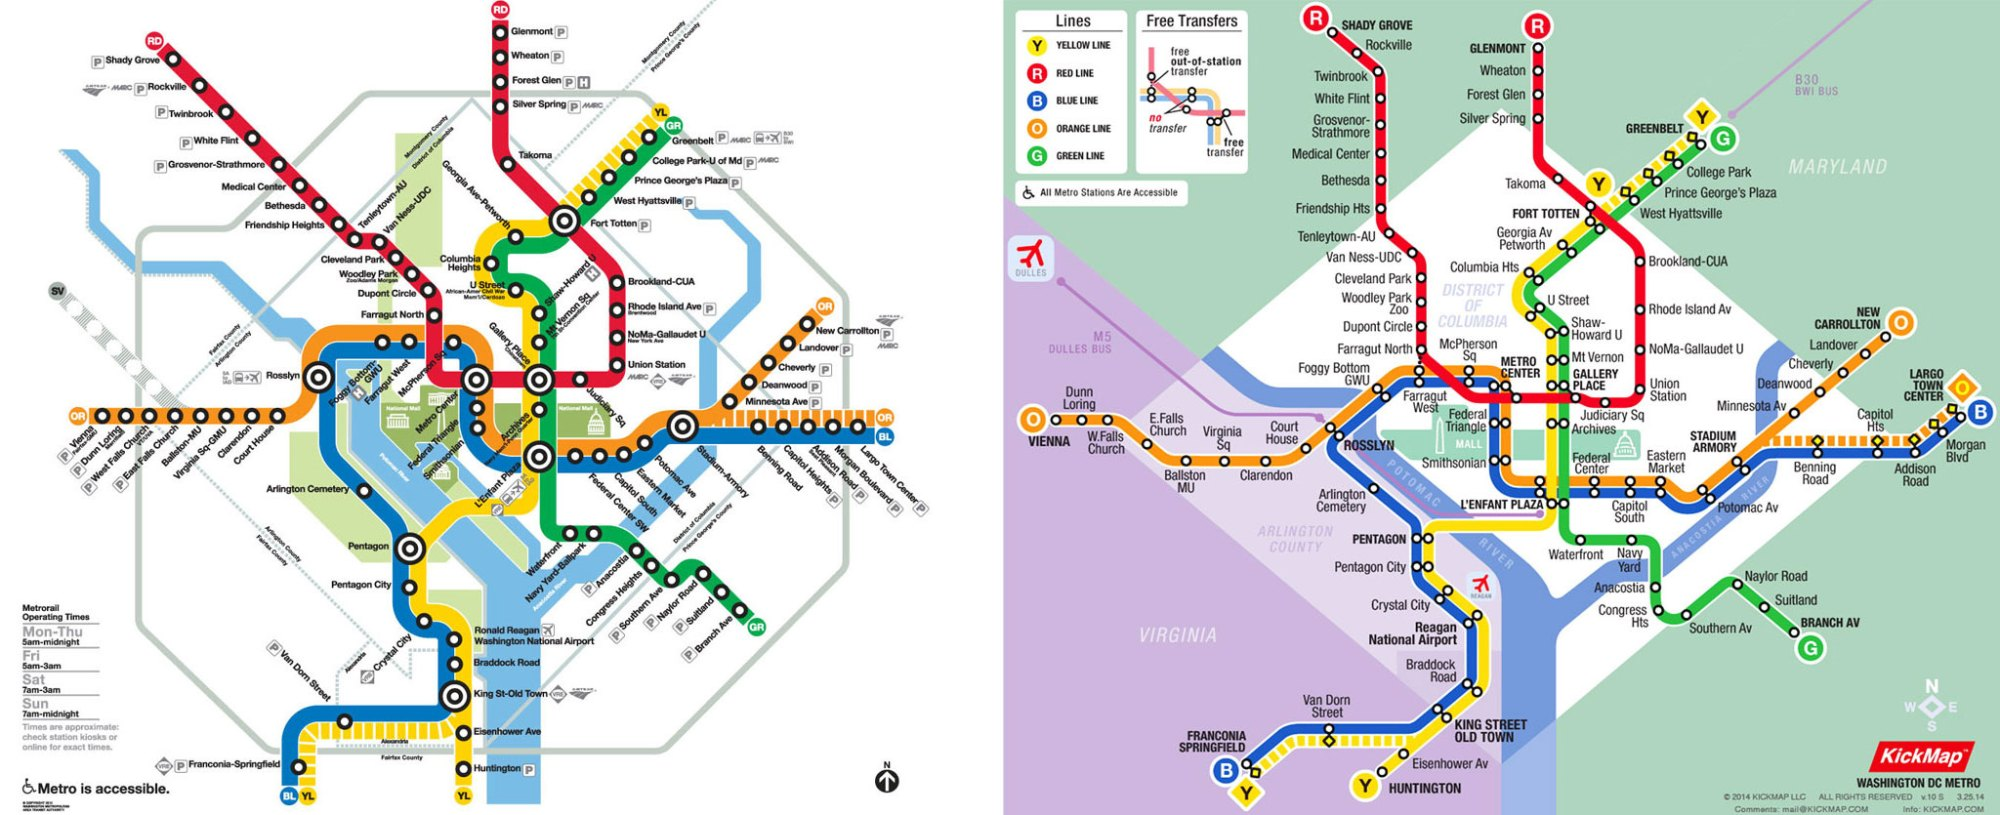 hight resolution of kickmap dc metro zoomed out more accurate simple and easy to read